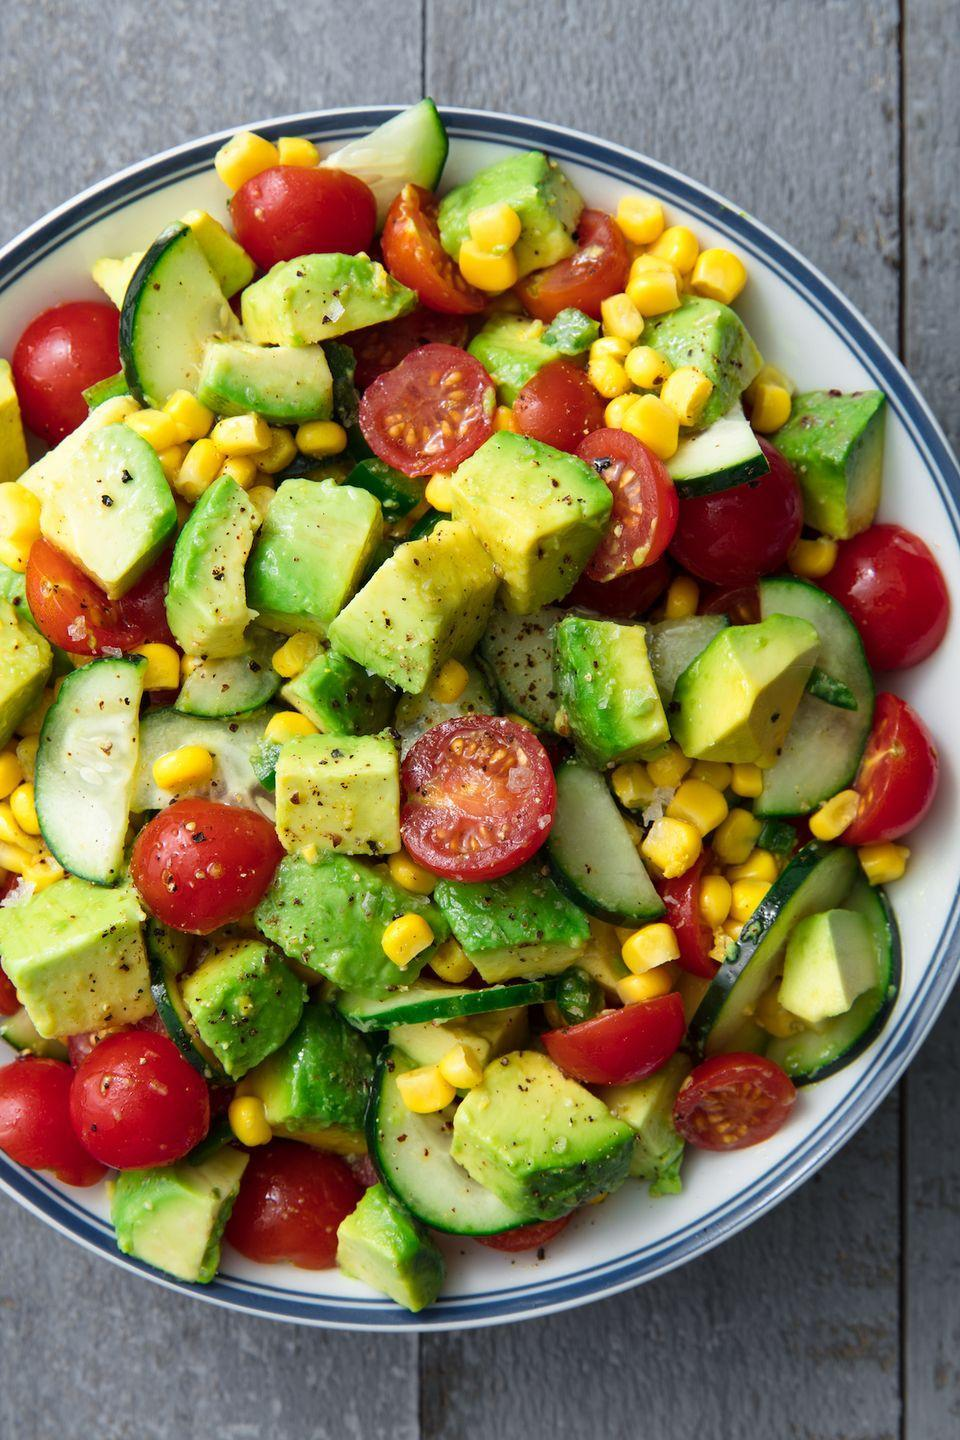 """<p>Bring this simple side to your next BBQ. </p><p>Get the recipe from <a href=""""https://www.delish.com/cooking/recipe-ideas/a19872947/avocado-tomato-salad-recipe/"""" rel=""""nofollow noopener"""" target=""""_blank"""" data-ylk=""""slk:Delish"""" class=""""link rapid-noclick-resp"""">Delish</a>.</p>"""